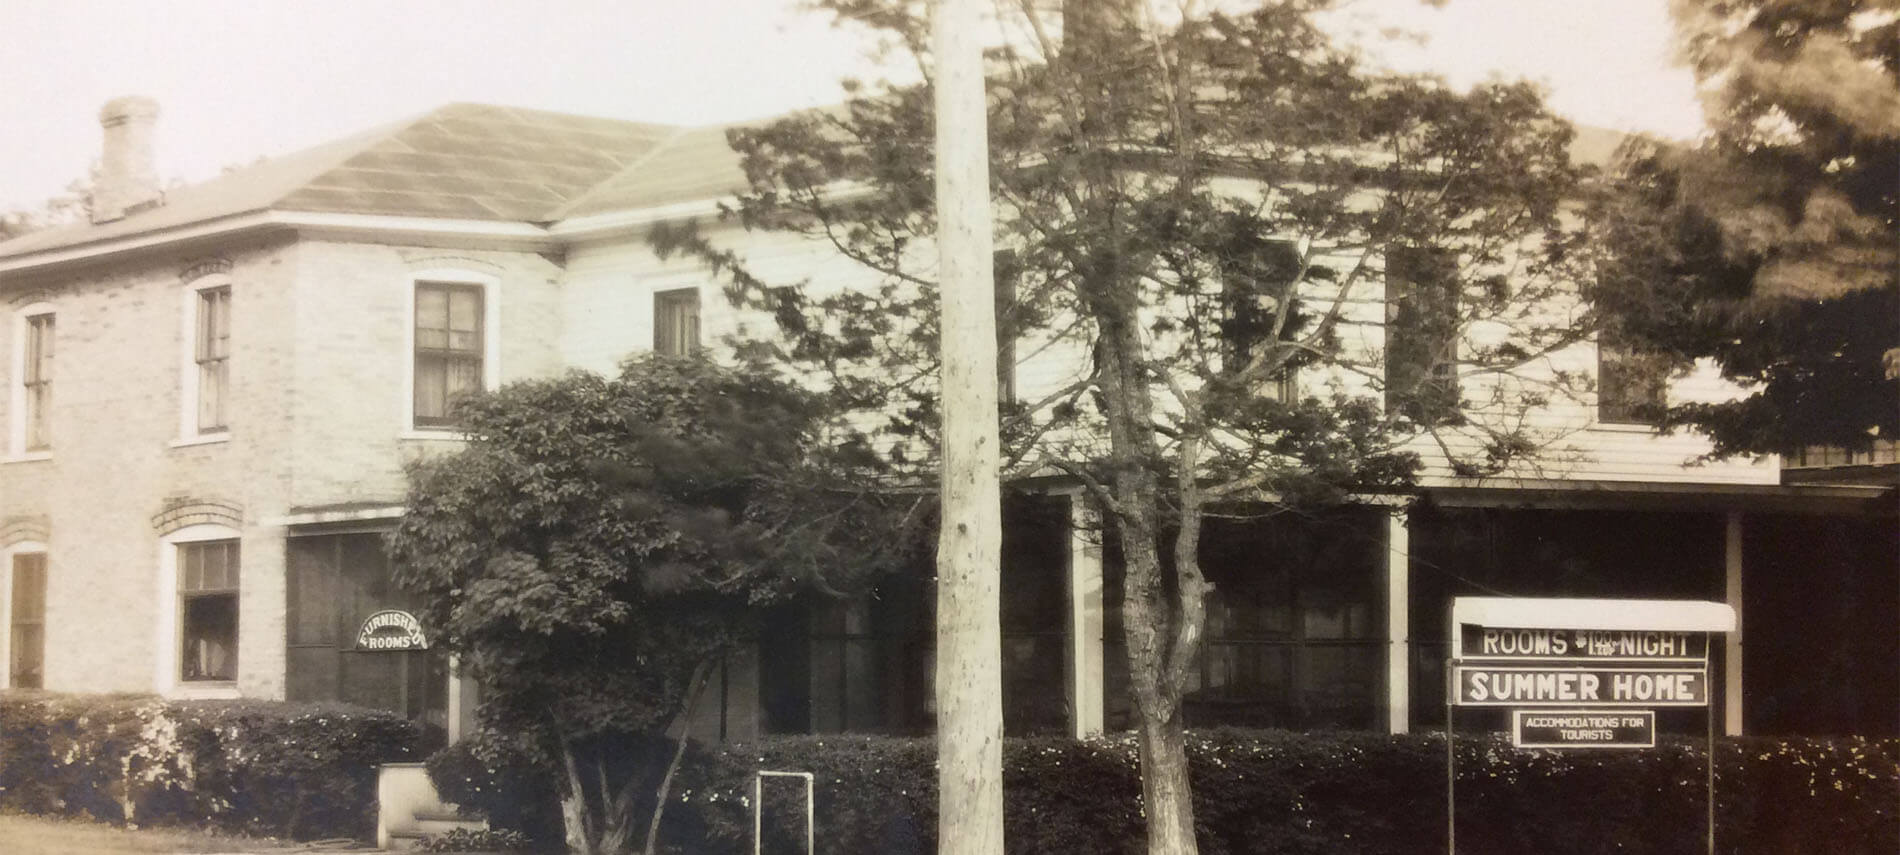 Old photo of hotel or bed and breakfast with sign for rooms. Name on sign is Summer Home.